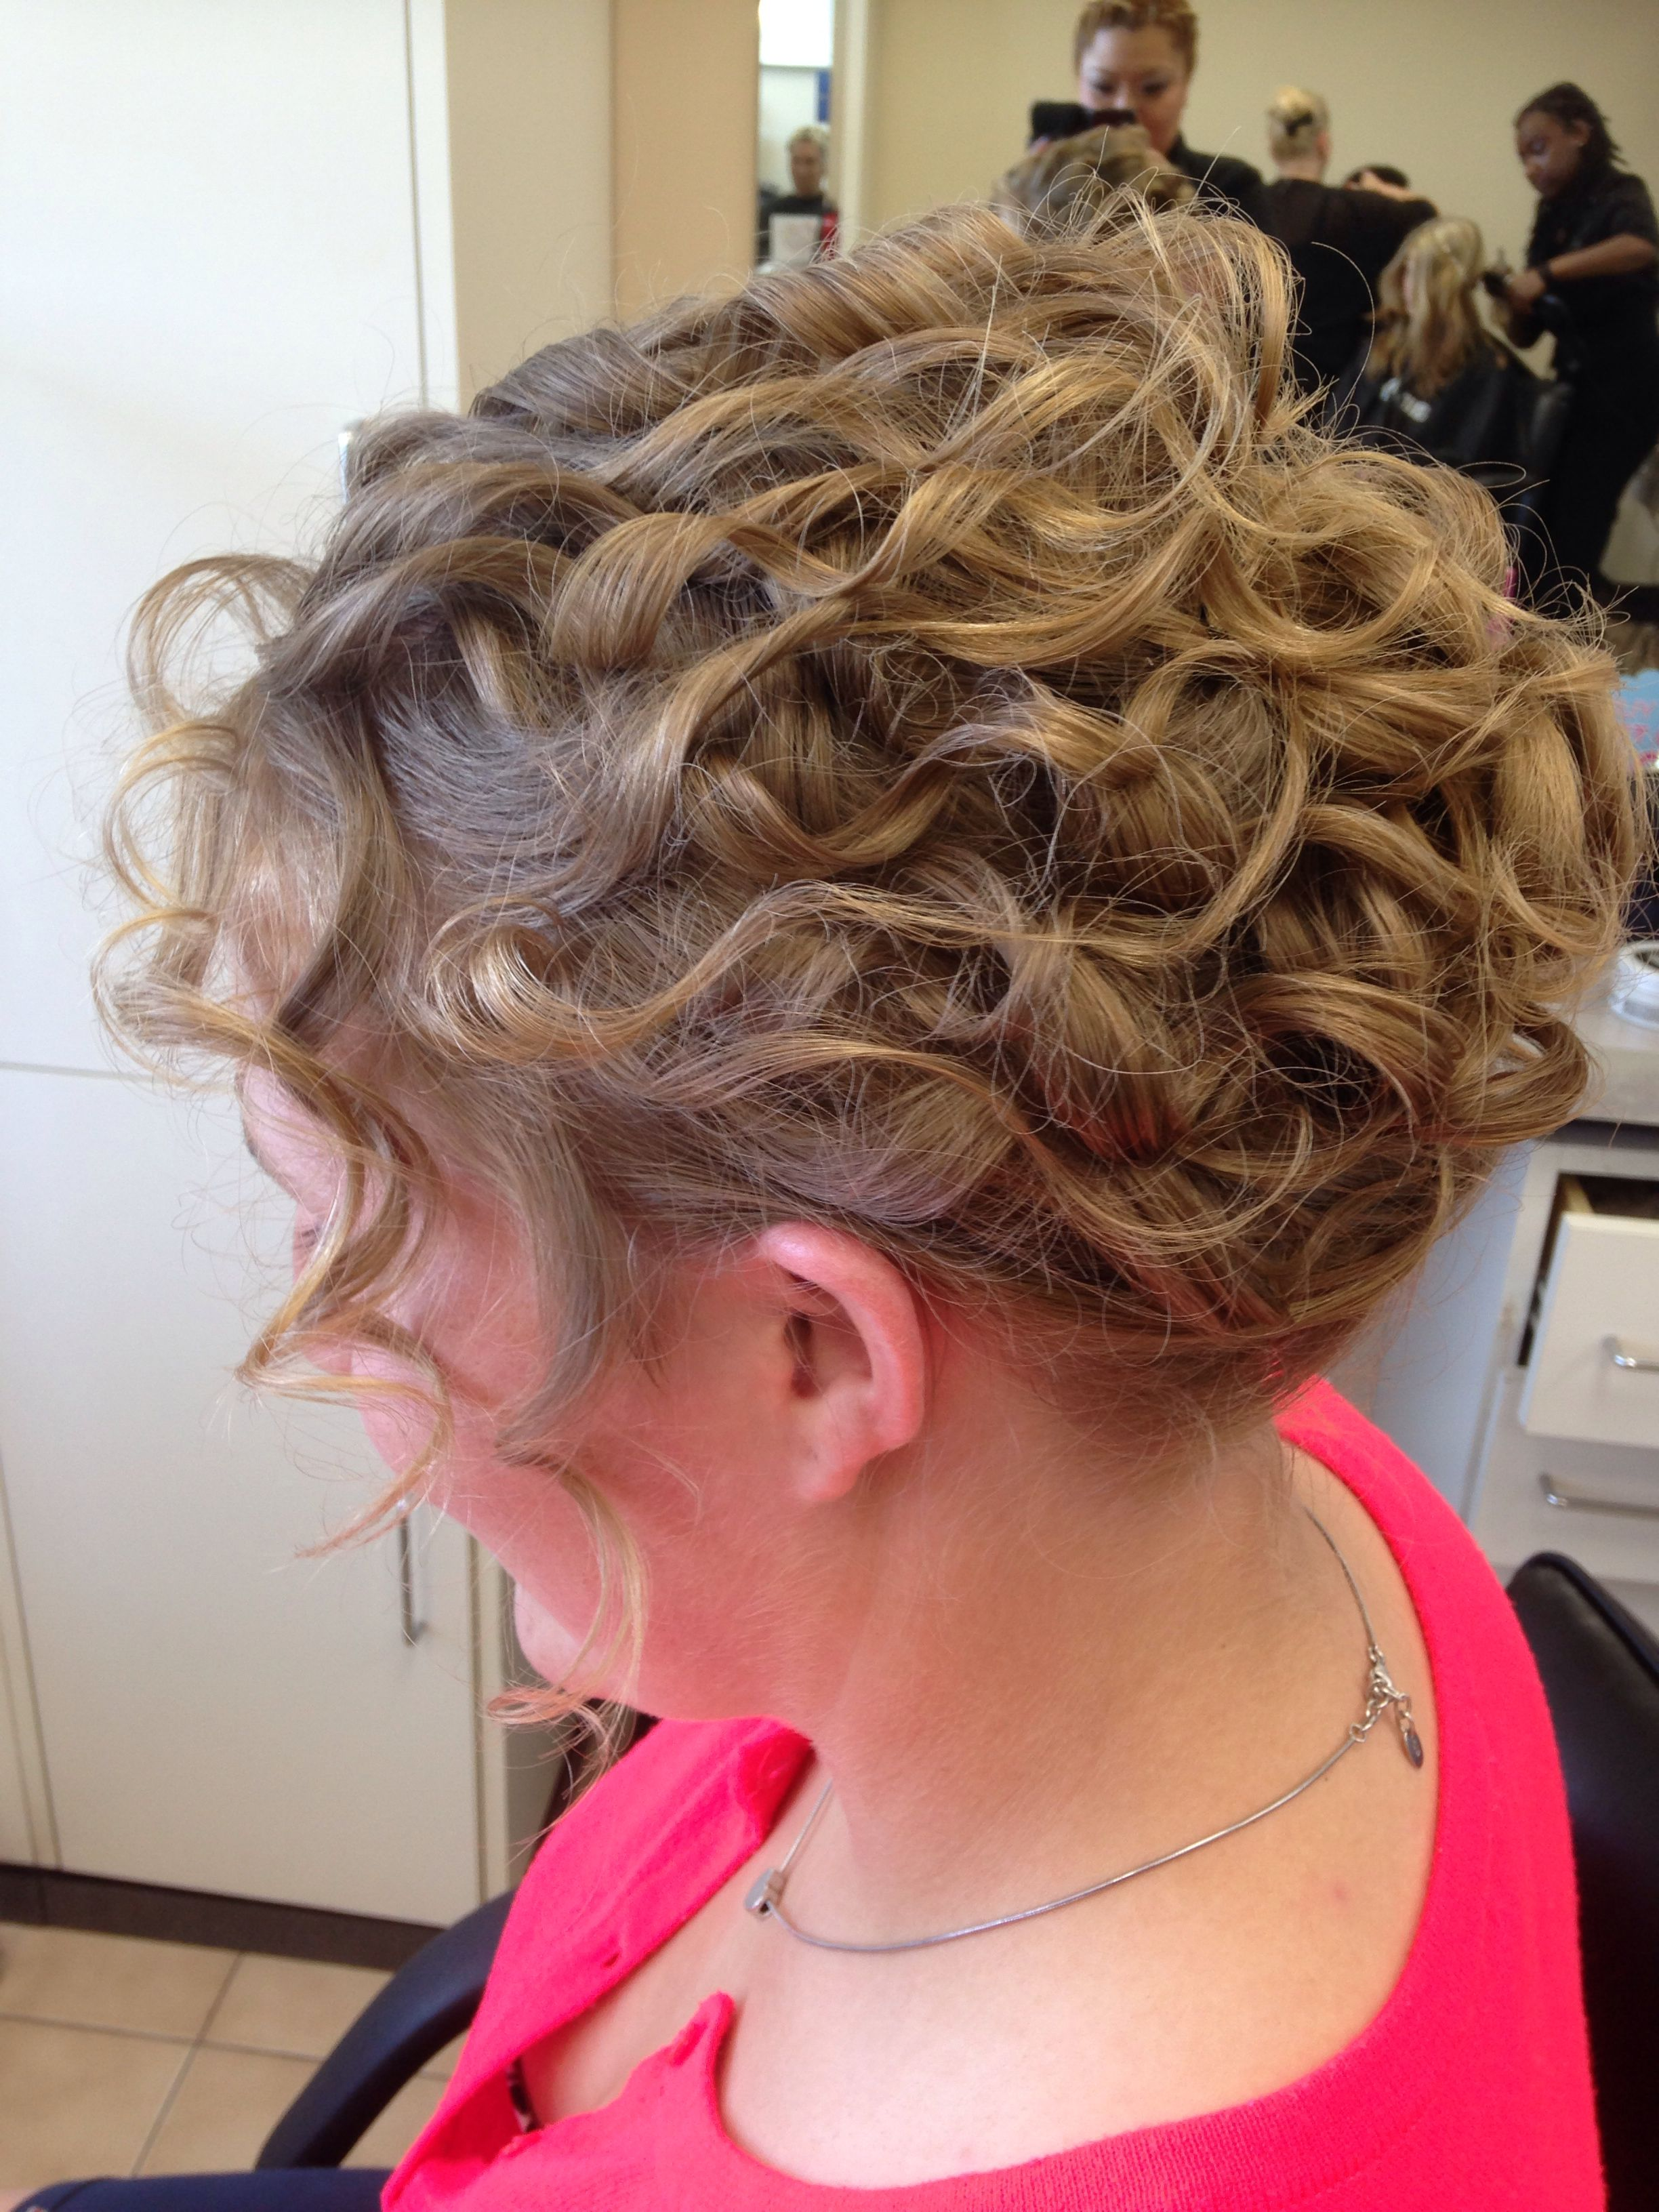 Prom Up Do By Marcela Len At Hair Cuttery 3015 E New York St